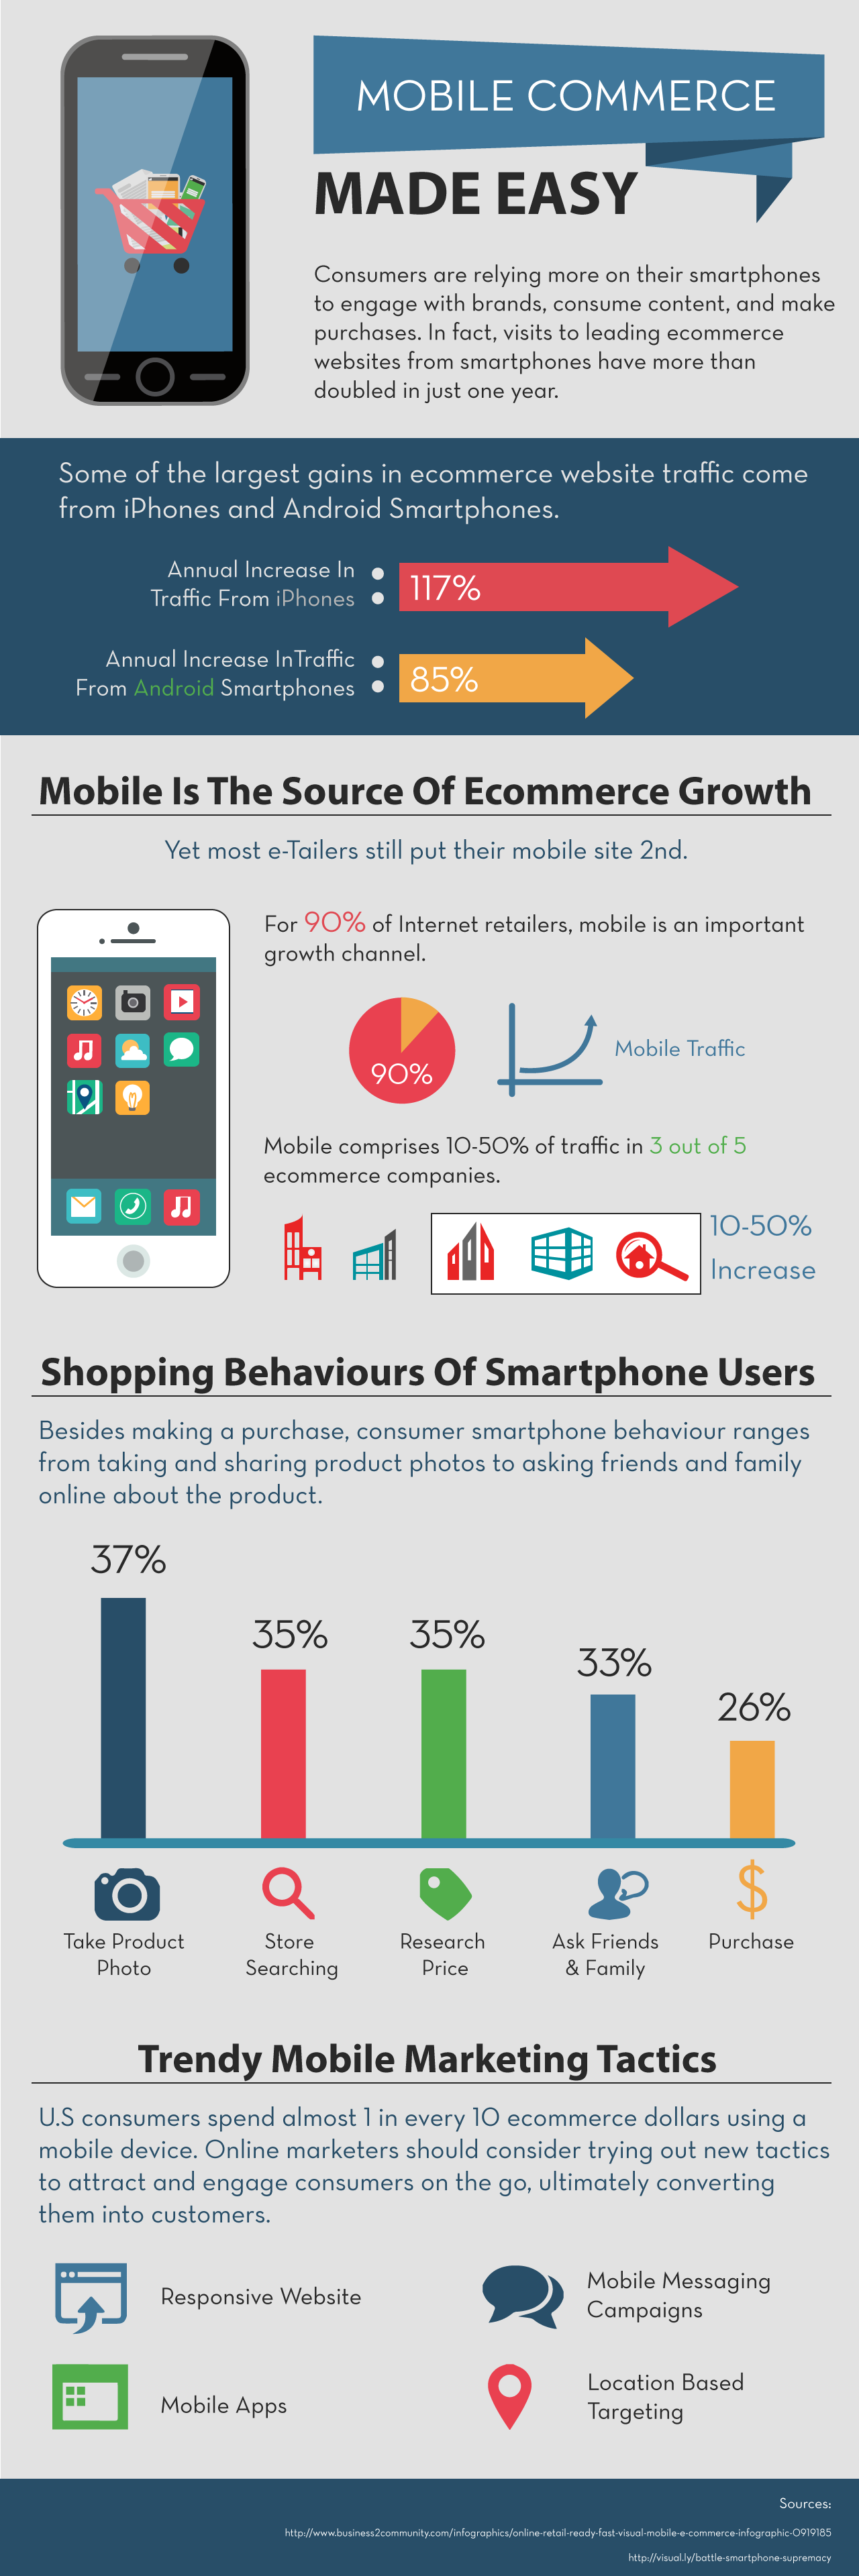 Mobile Commerce Made Easy - How To Set Up For Mobile Commerce Sales